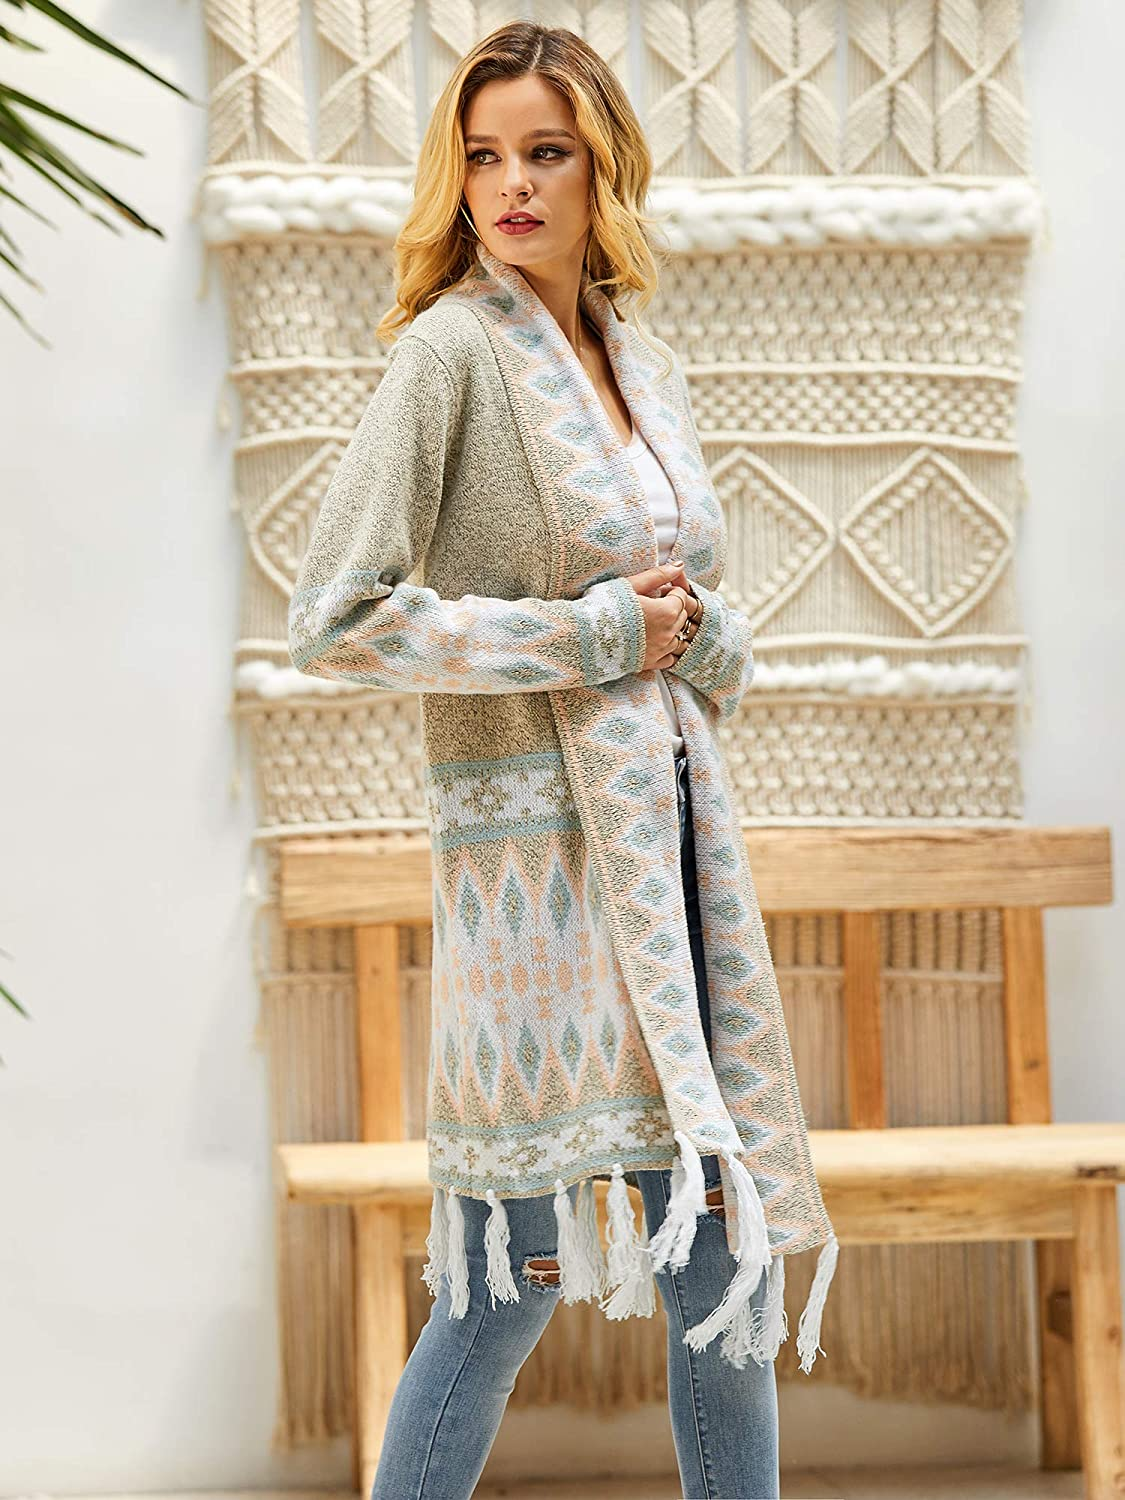 Ladies' Colorful 1920s Sweaters and Cardigans History Misassy Womens Boho Open Front Long Cardigans Sweater Loose Long Sleeve Aztec Embroidery Tassels Kimono Duster Outwear $37.88 AT vintagedancer.com